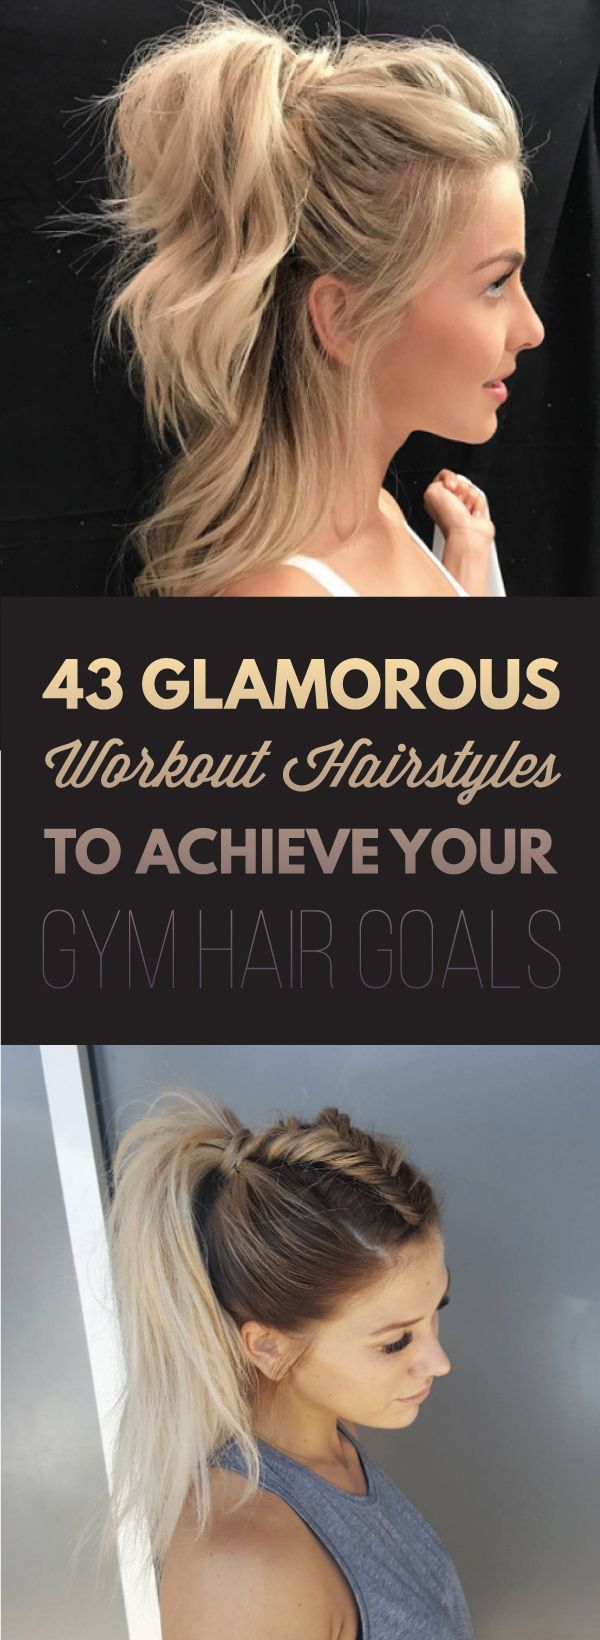 43 Glamorous Workout Hairstyles To Achieve Your Gym Hair Goals Workout Hairstyles Hair Styles Gym Hairstyles